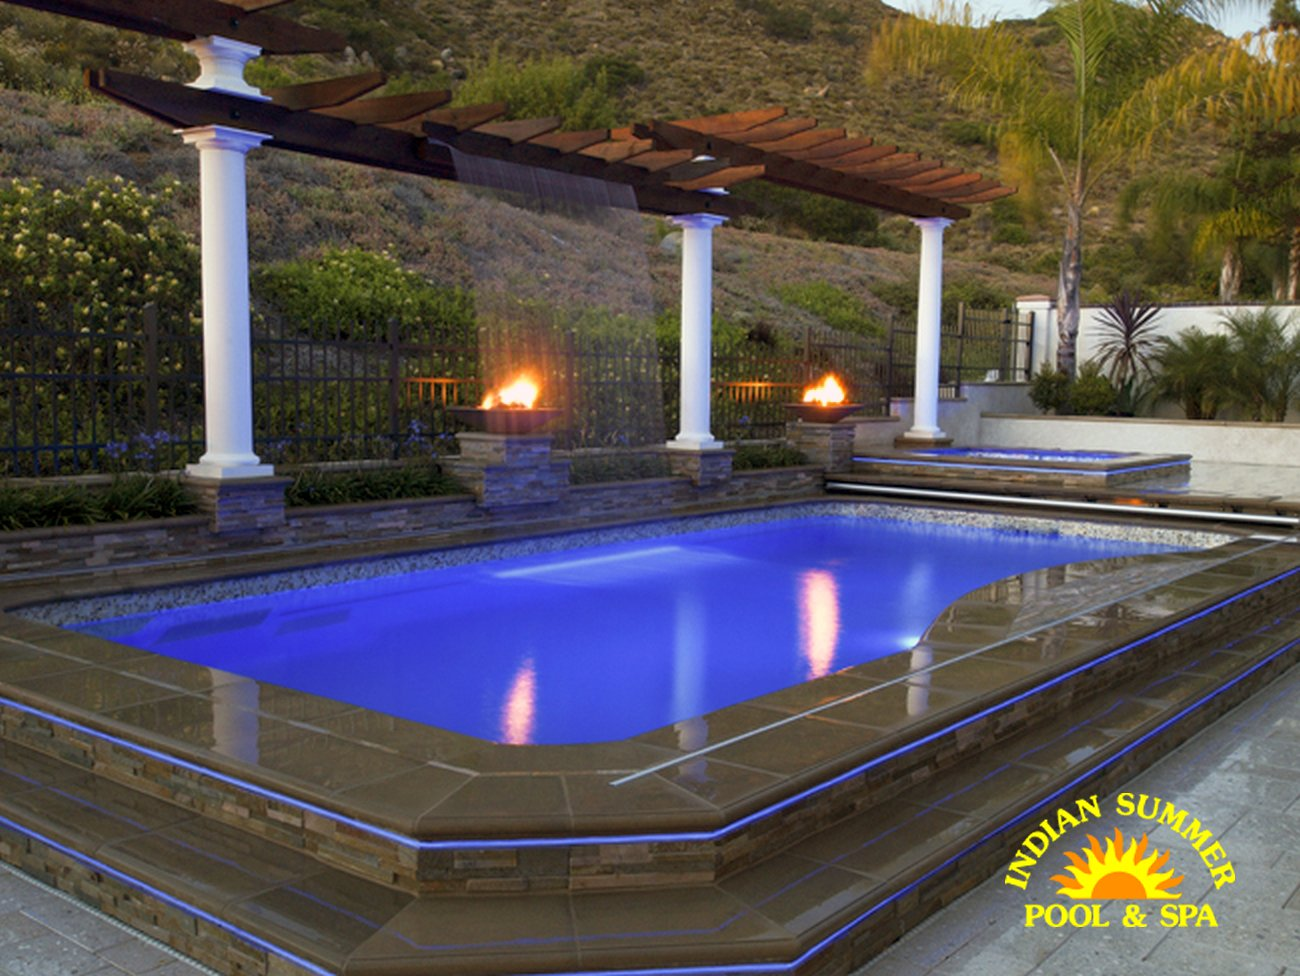 Swimming Pool Features |Pool Water Features | Indian Summer ...